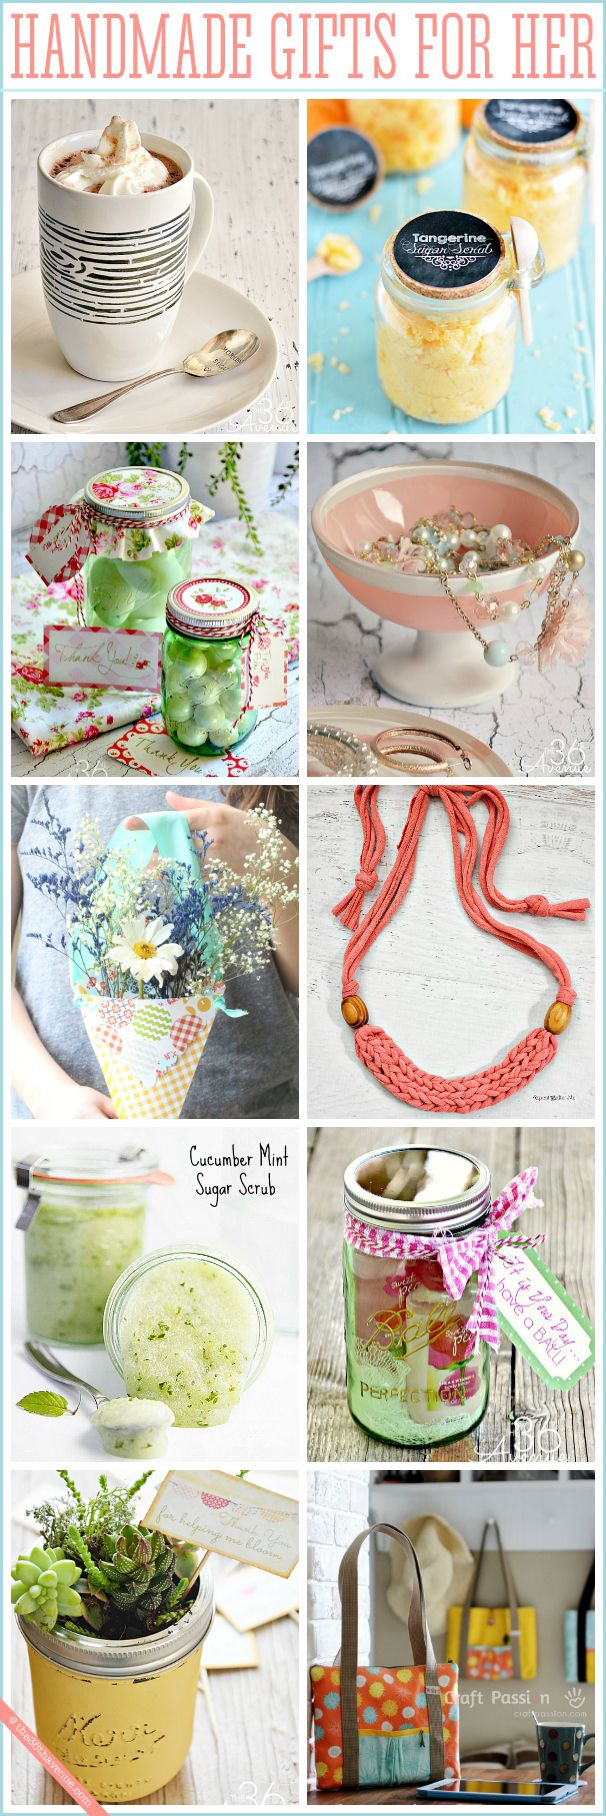 Handmade Gifts for Women Homemade gifts, Diy gifts